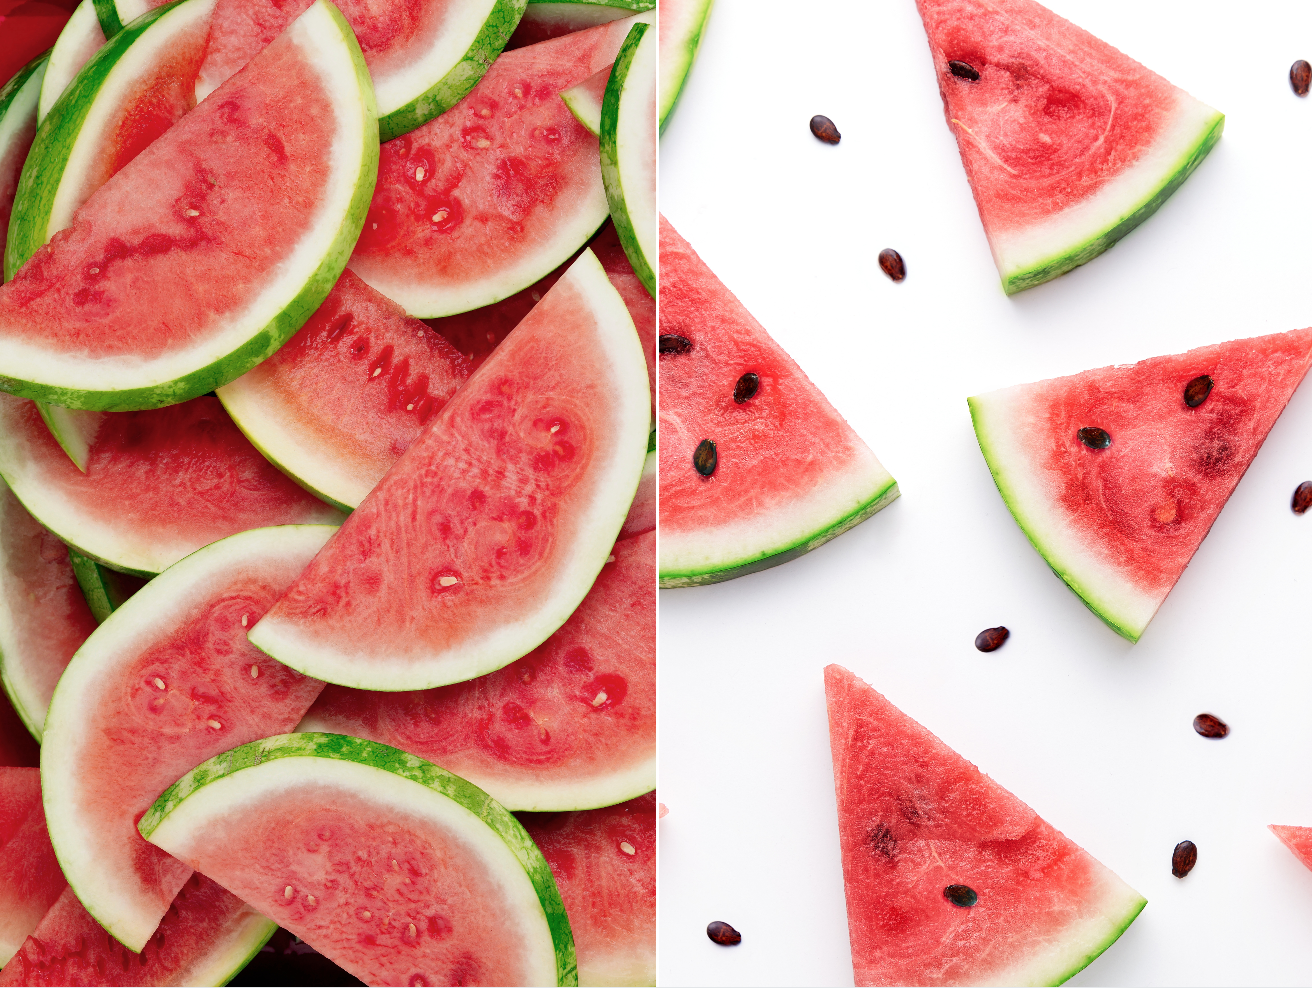 Seedless Vs Seeded Watermelon What S The Difference